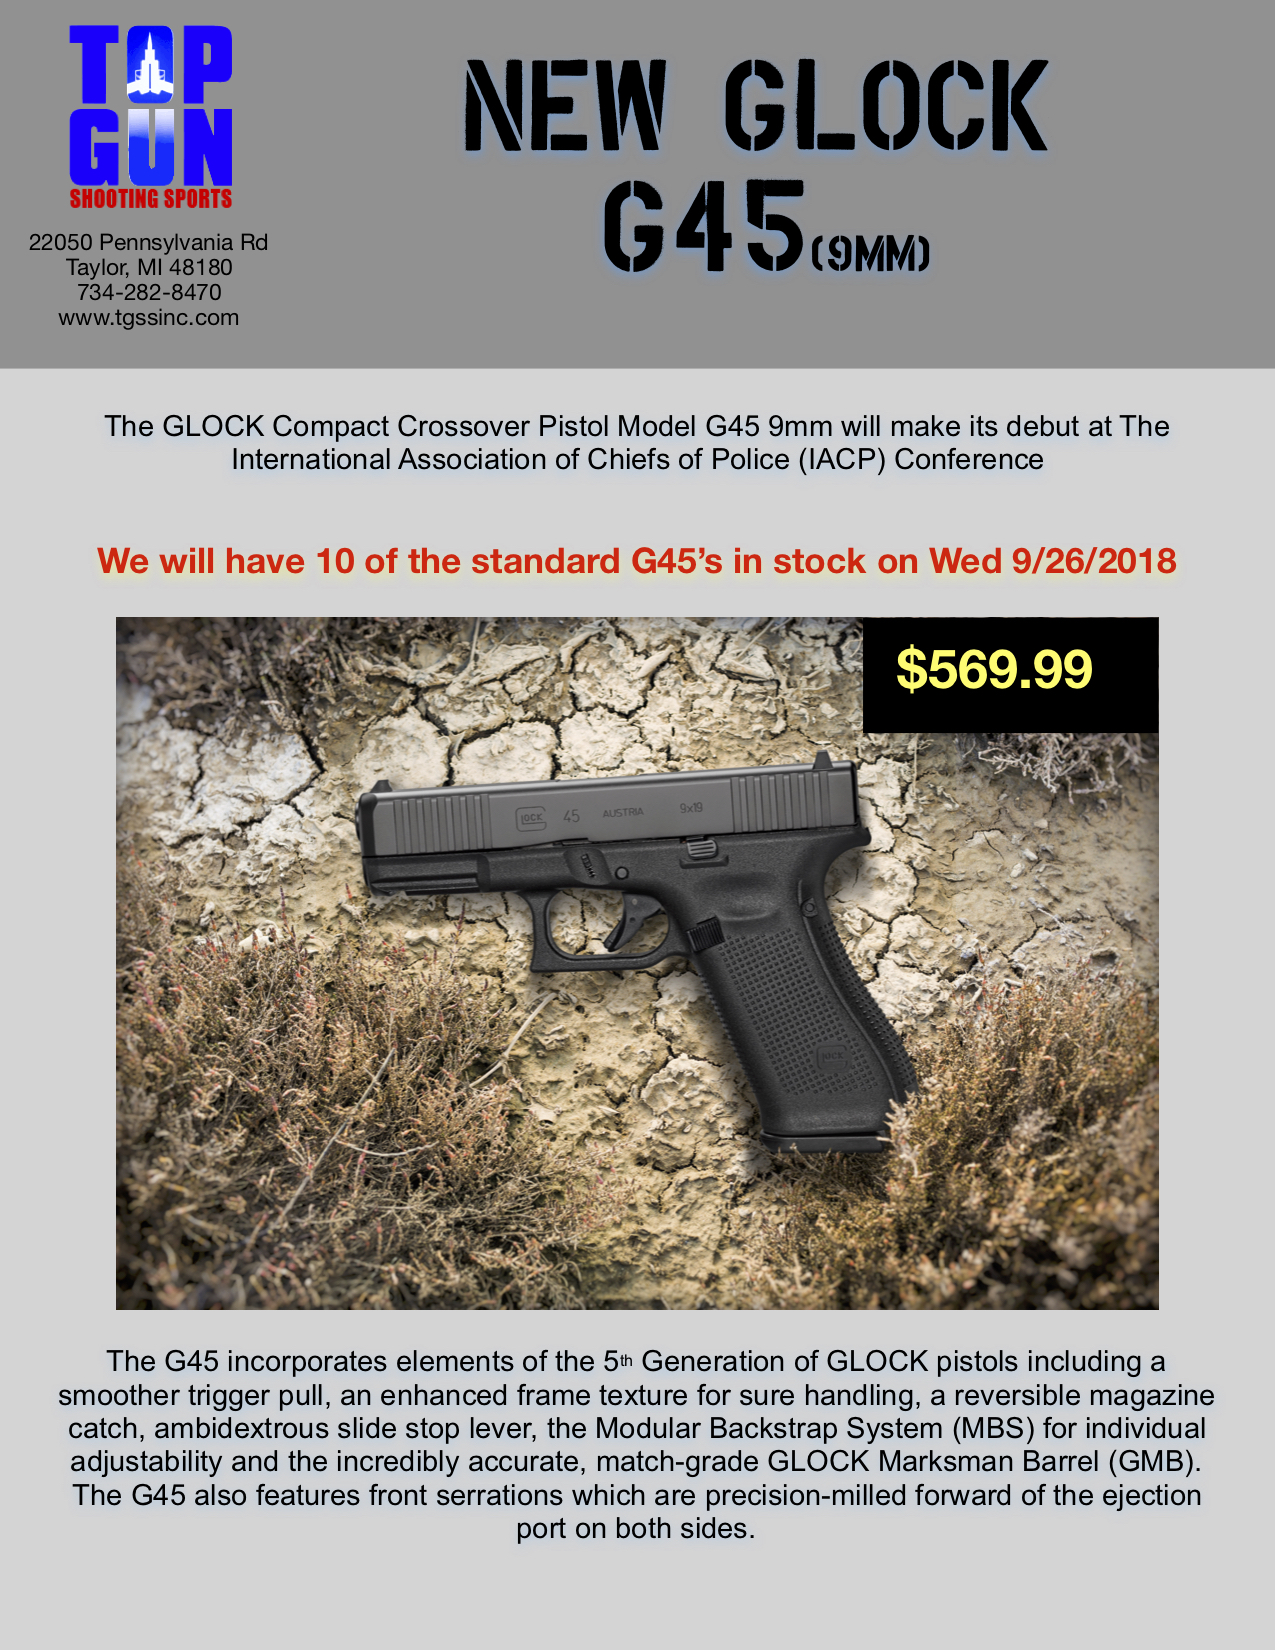 glock-9mm-top-gun-shooting-range-45 | Top Gun Shooting Sports Inc